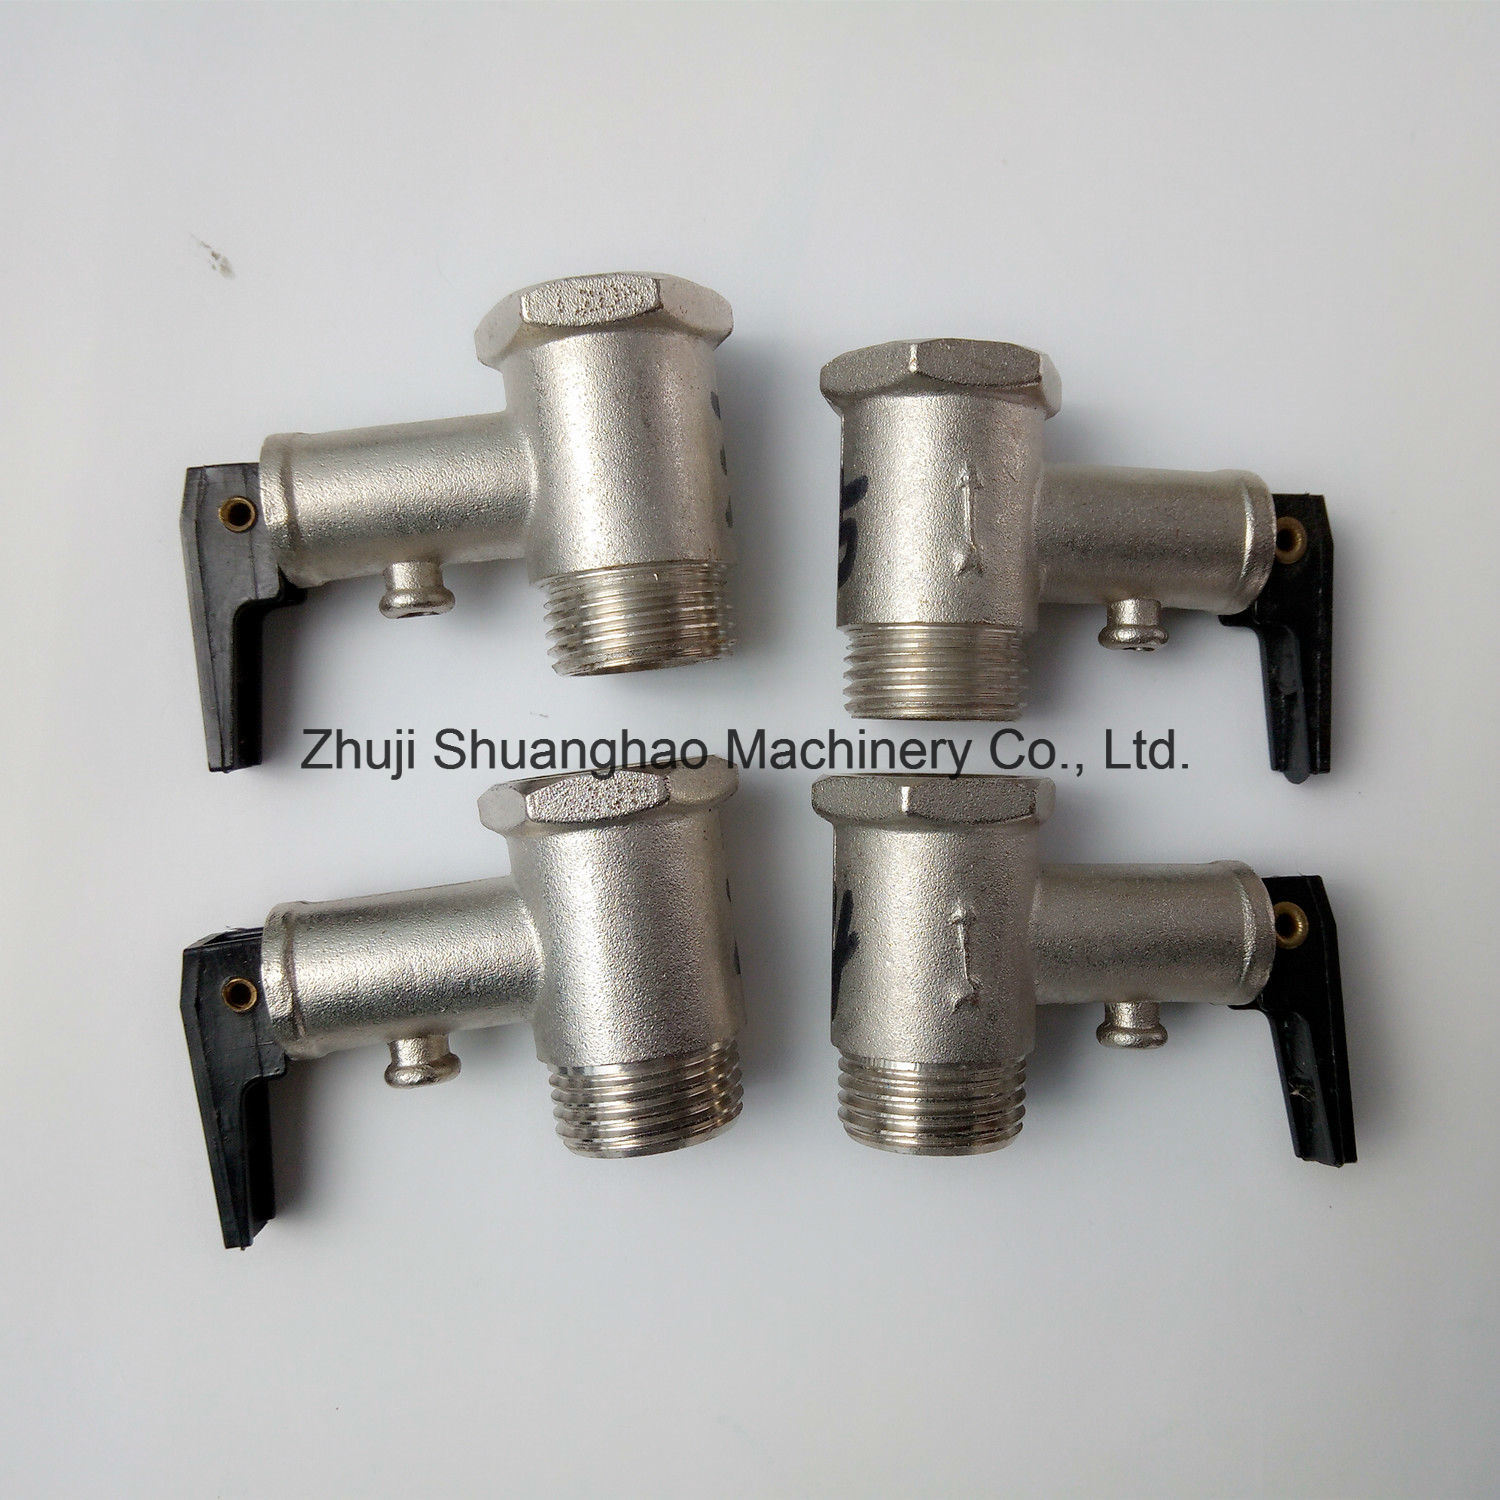 Safety Relief Valve for Water Heaters